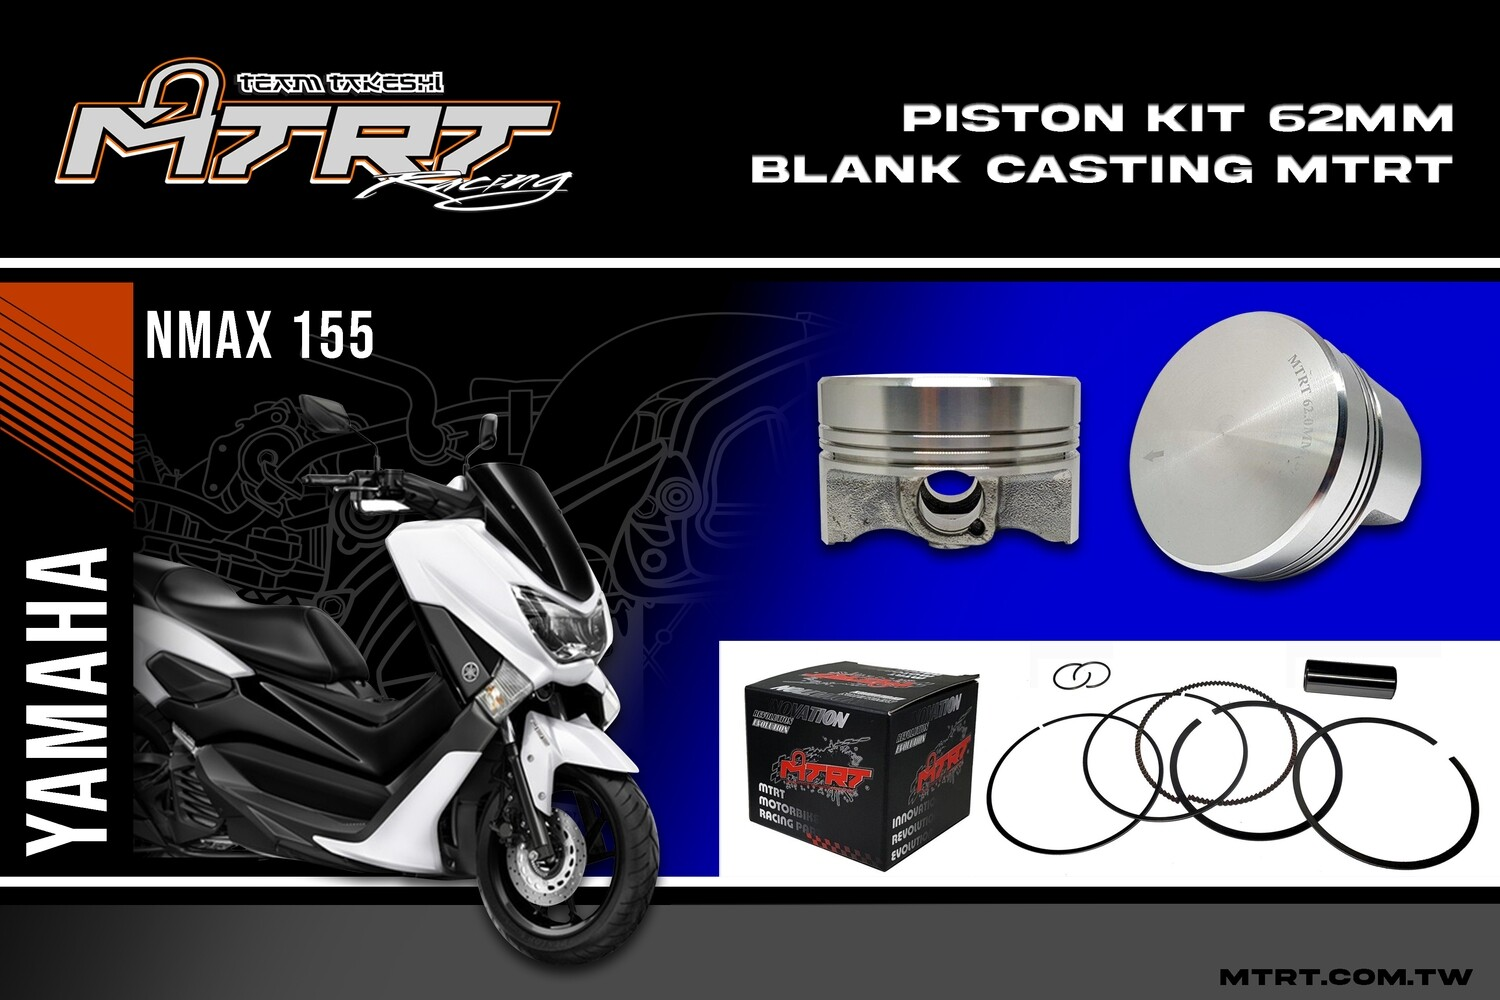 PISTON  KIT NMAX155 62MM BLANK  CASTING   MTRT